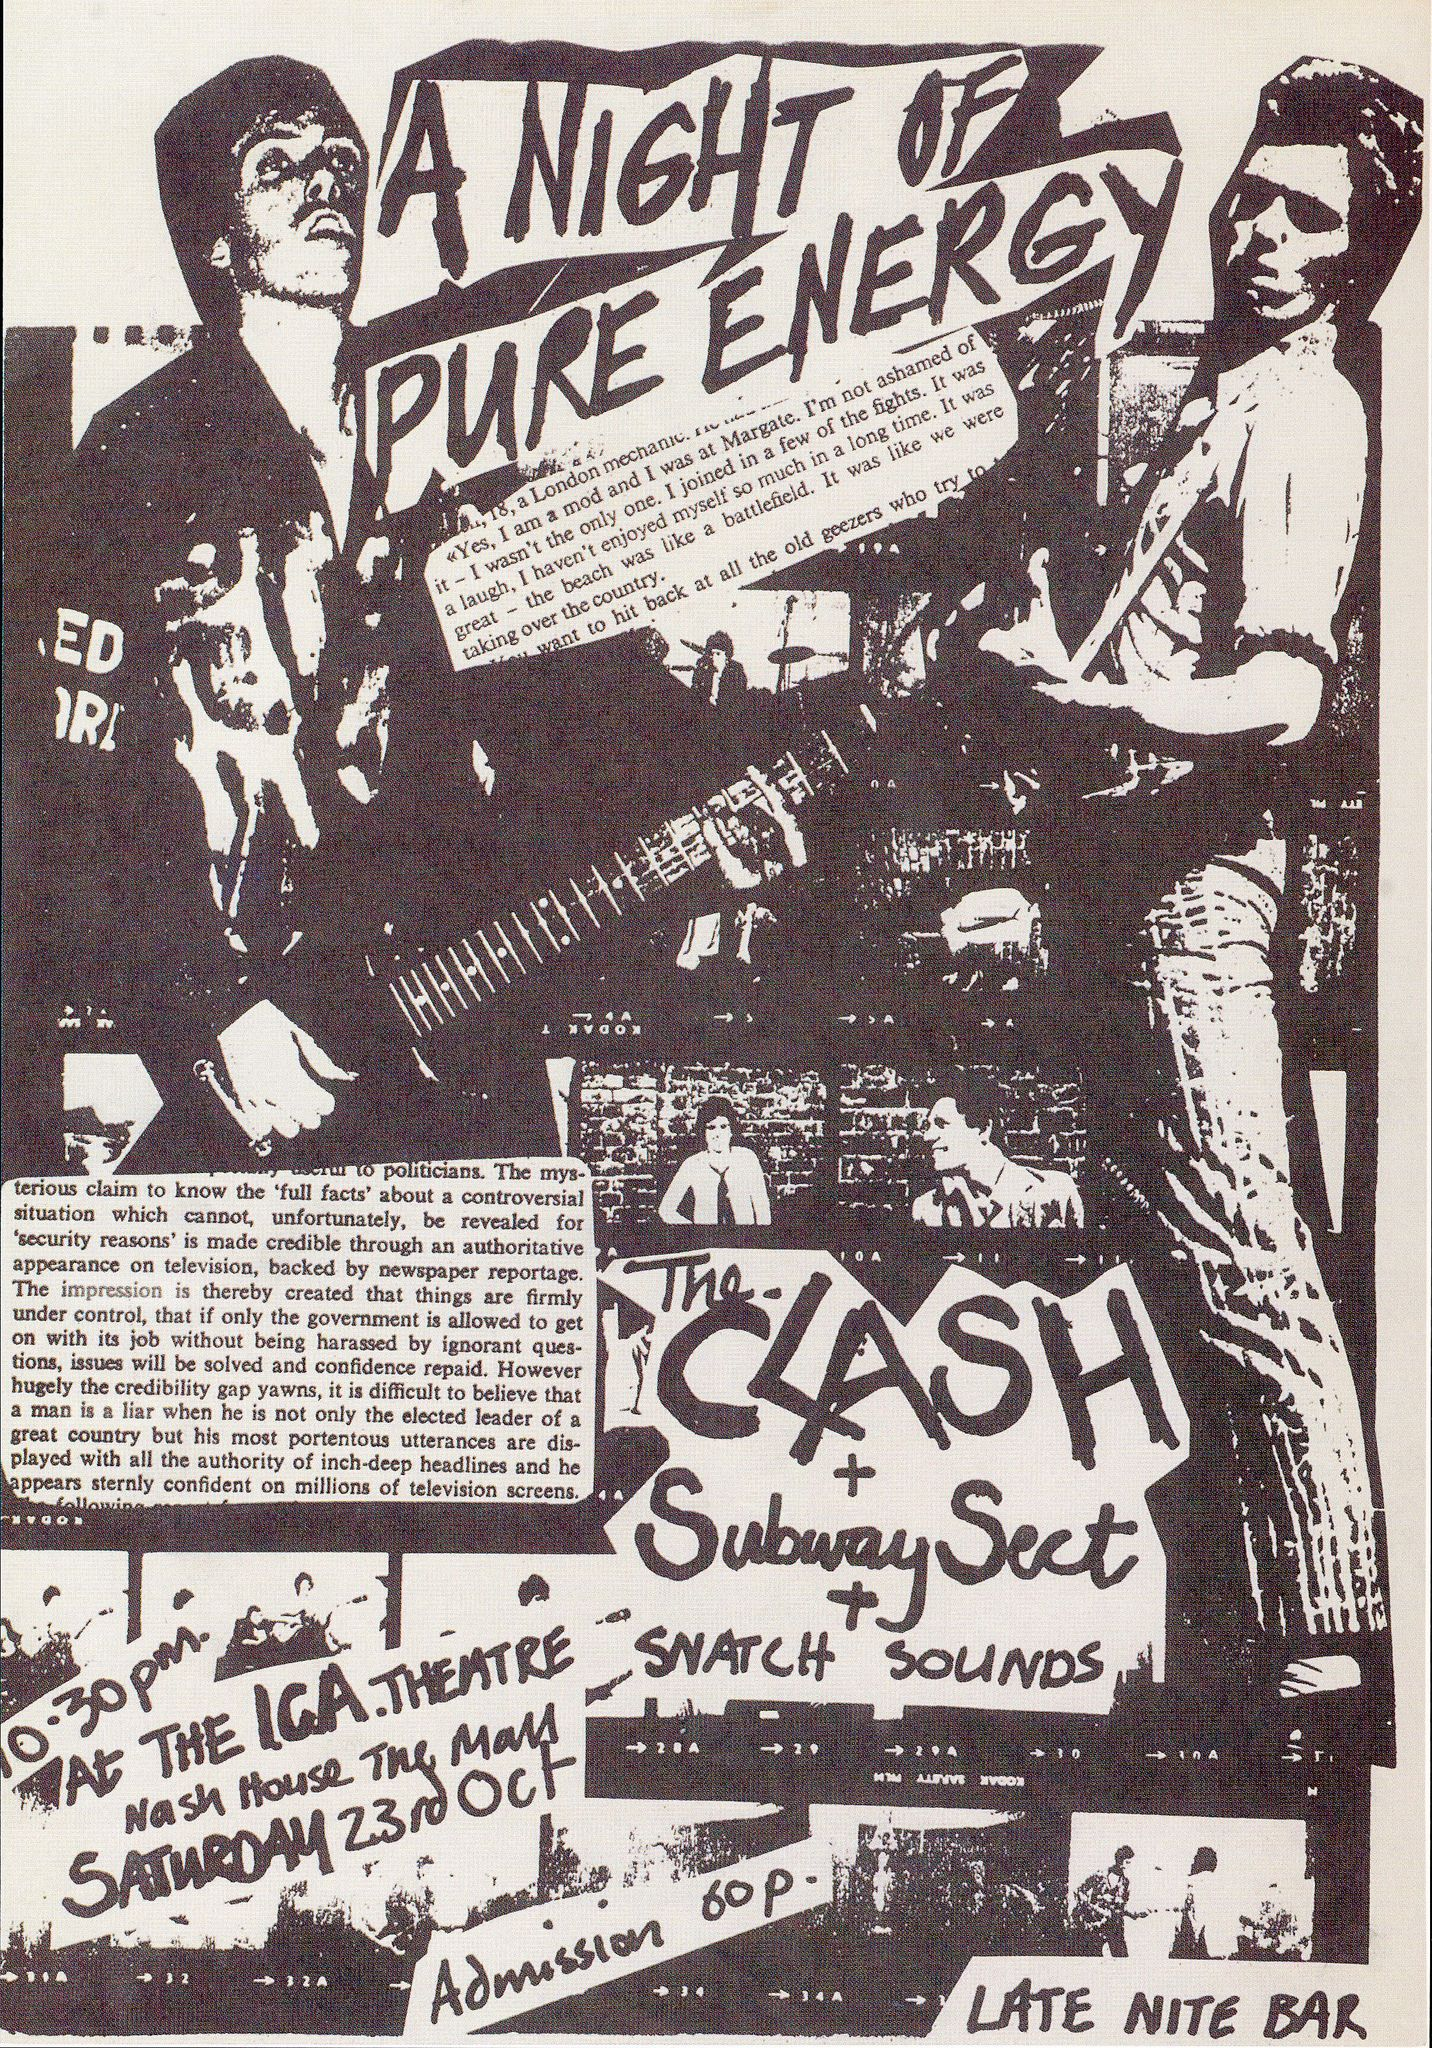 Clash with Subway Sect